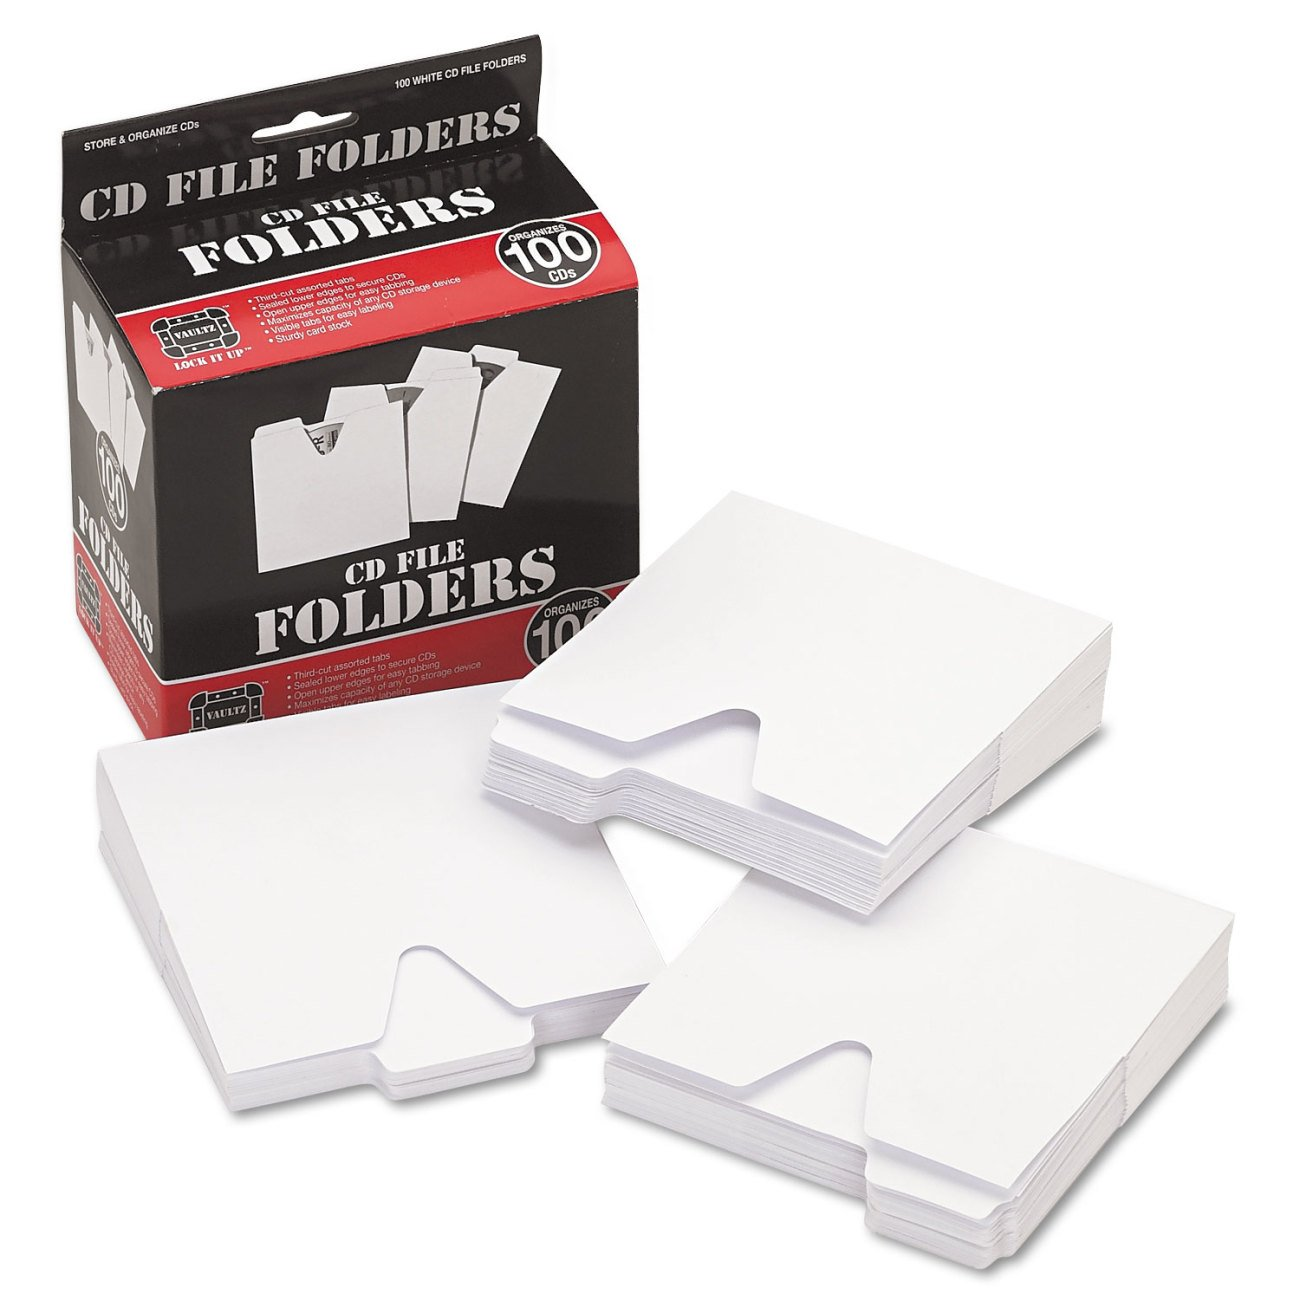 Vaultz CD Storage File Folders, 100 Folders per Box, White (VZ01096)